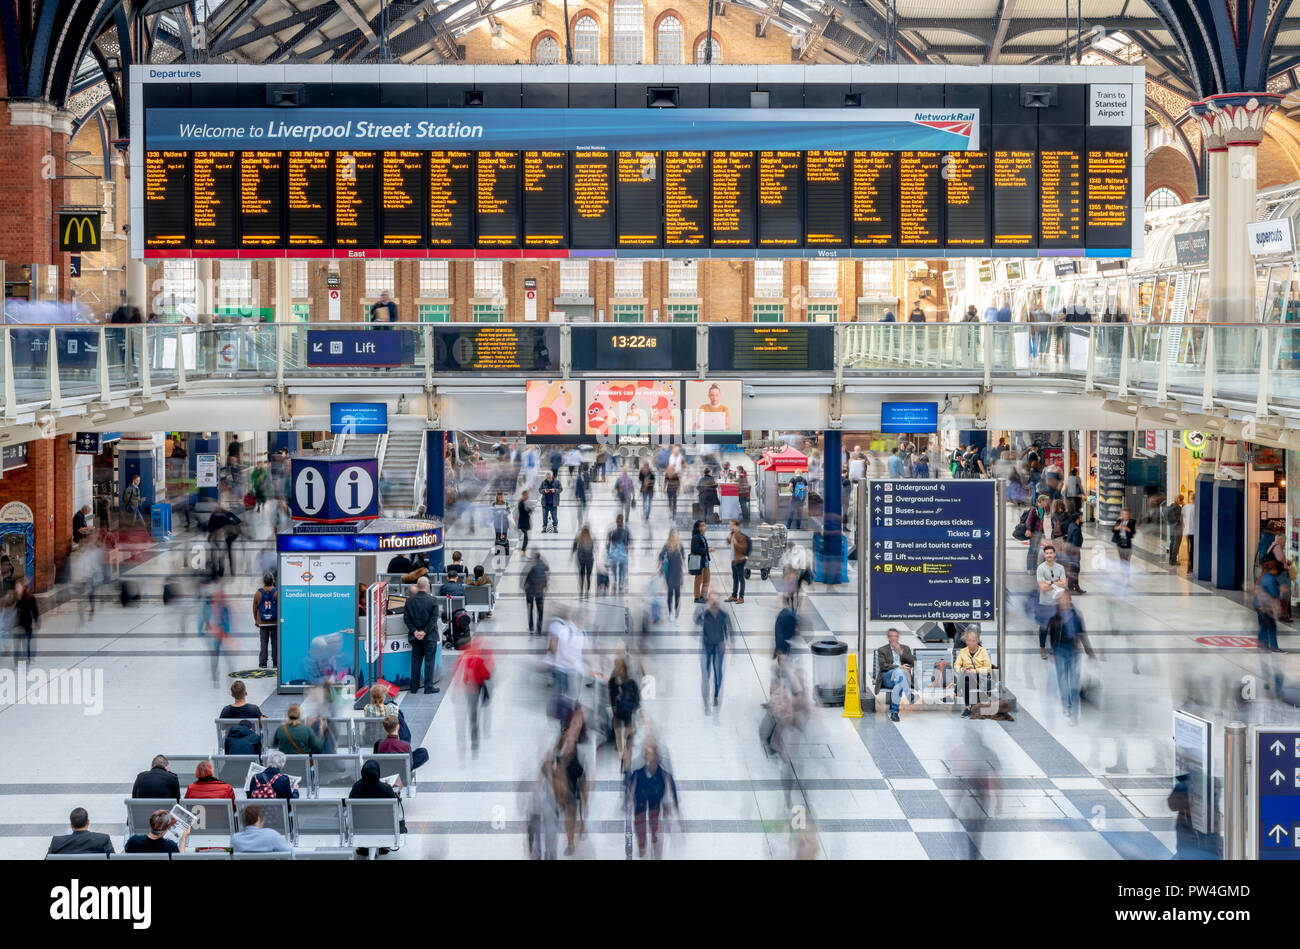 Busy passengers catching their trains at Liverpool Street Station in London. The long exposure captures the moving people as a series of blurs. - Stock Image